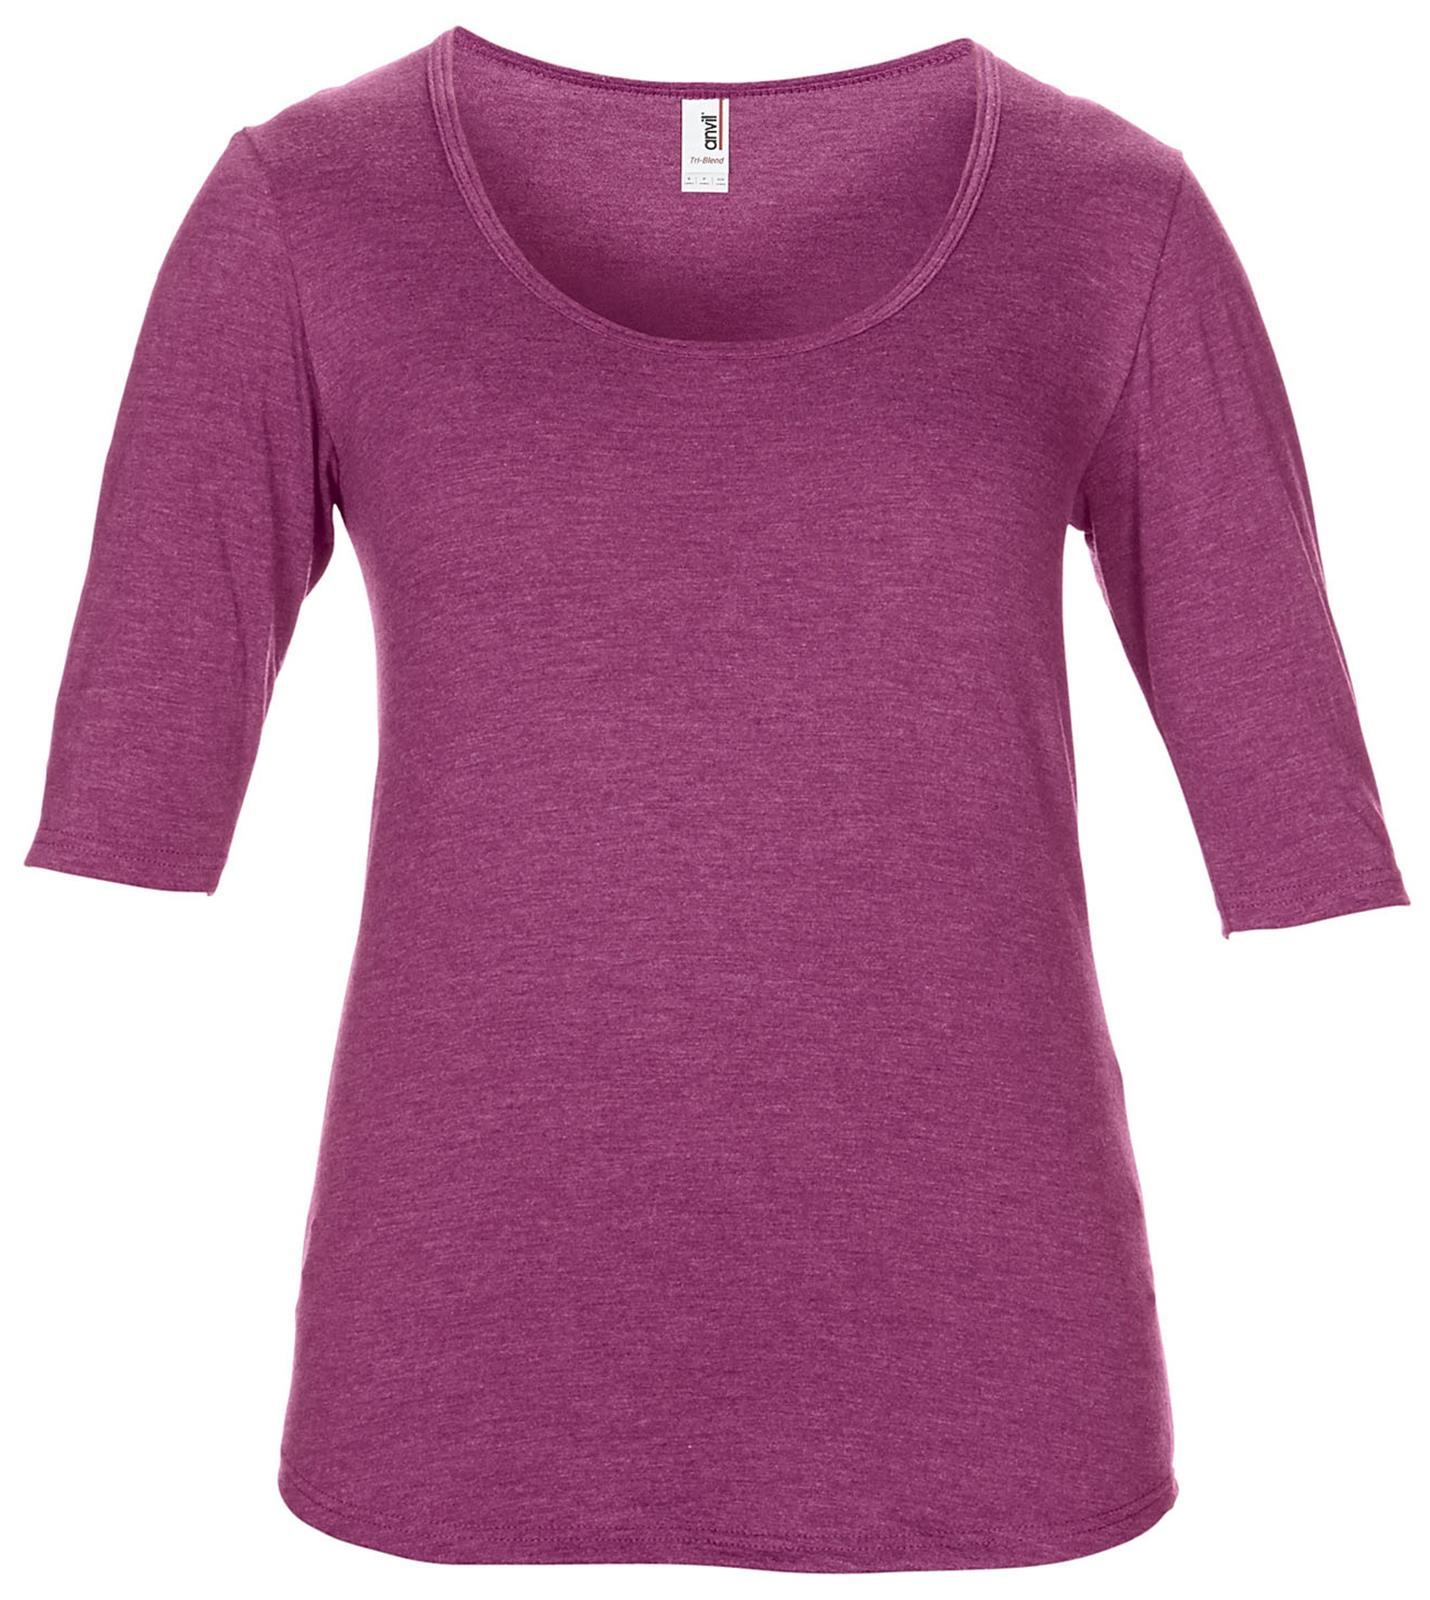 New-Womens-Anvil-Tri-blend-Deep-Scoop-Neck-1-2-Sleeved-T-Shirts-Tops-Size-8-20